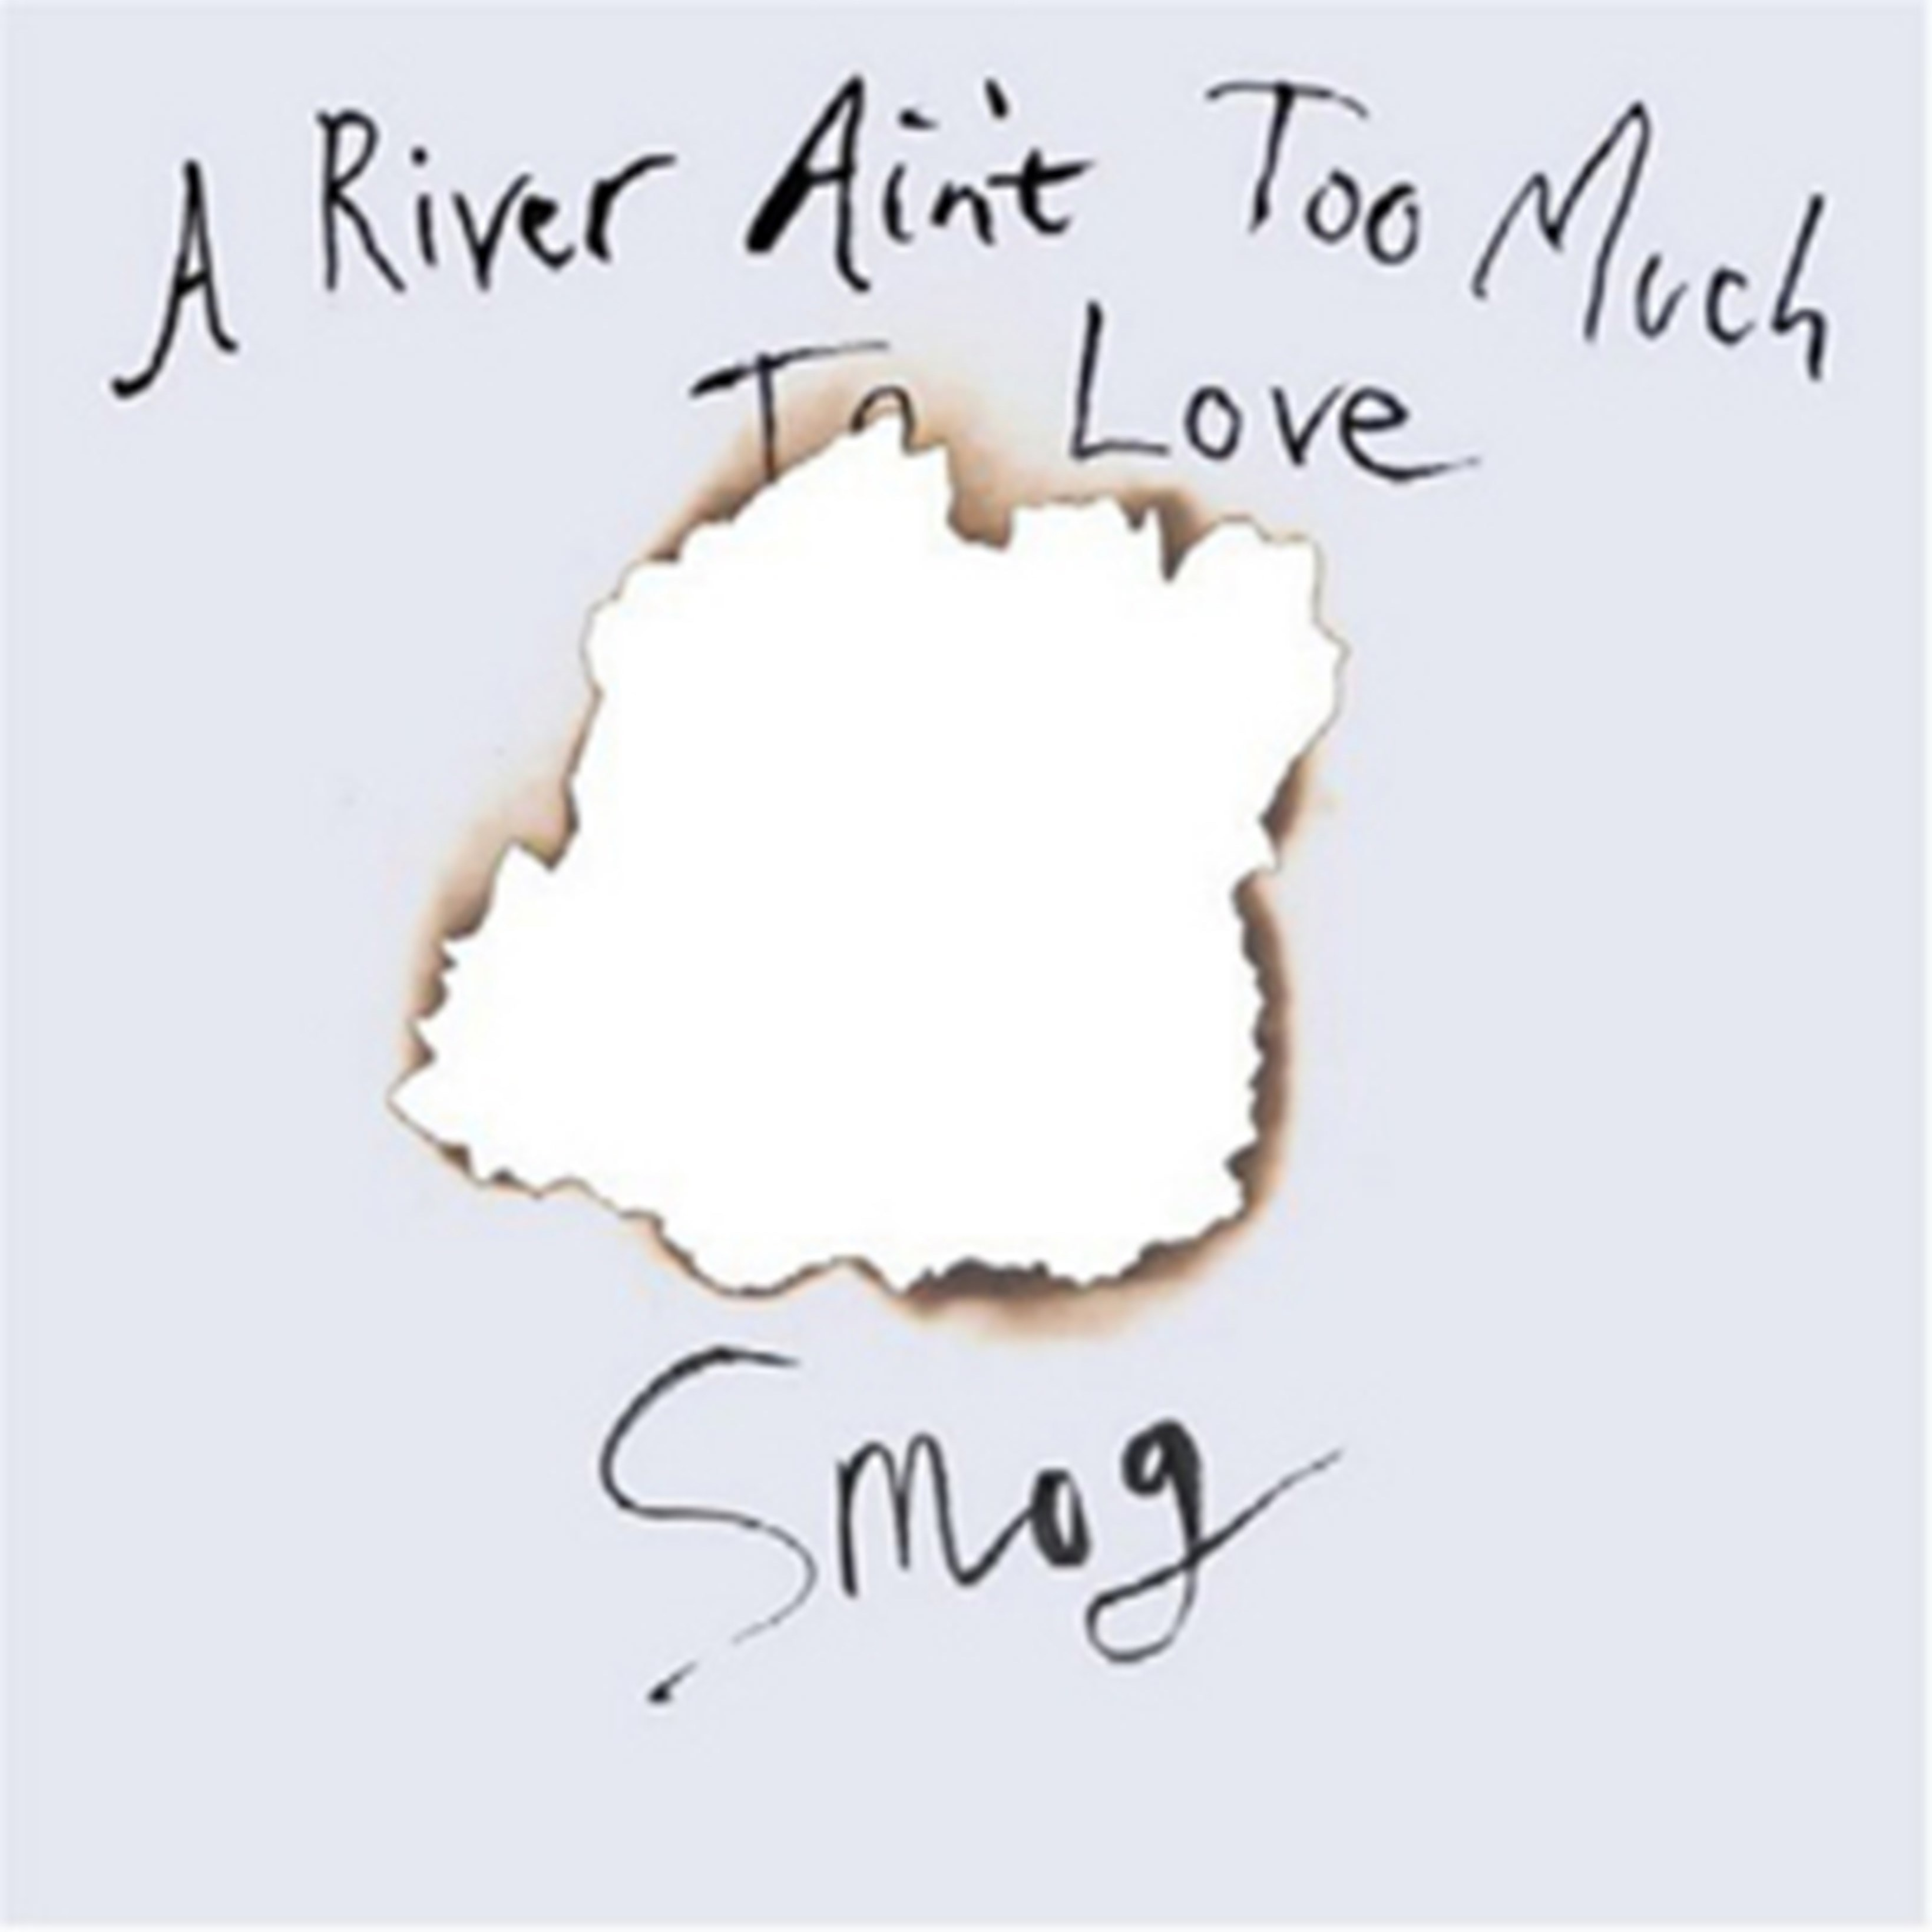 A River Ain't Too Much to Love - 1